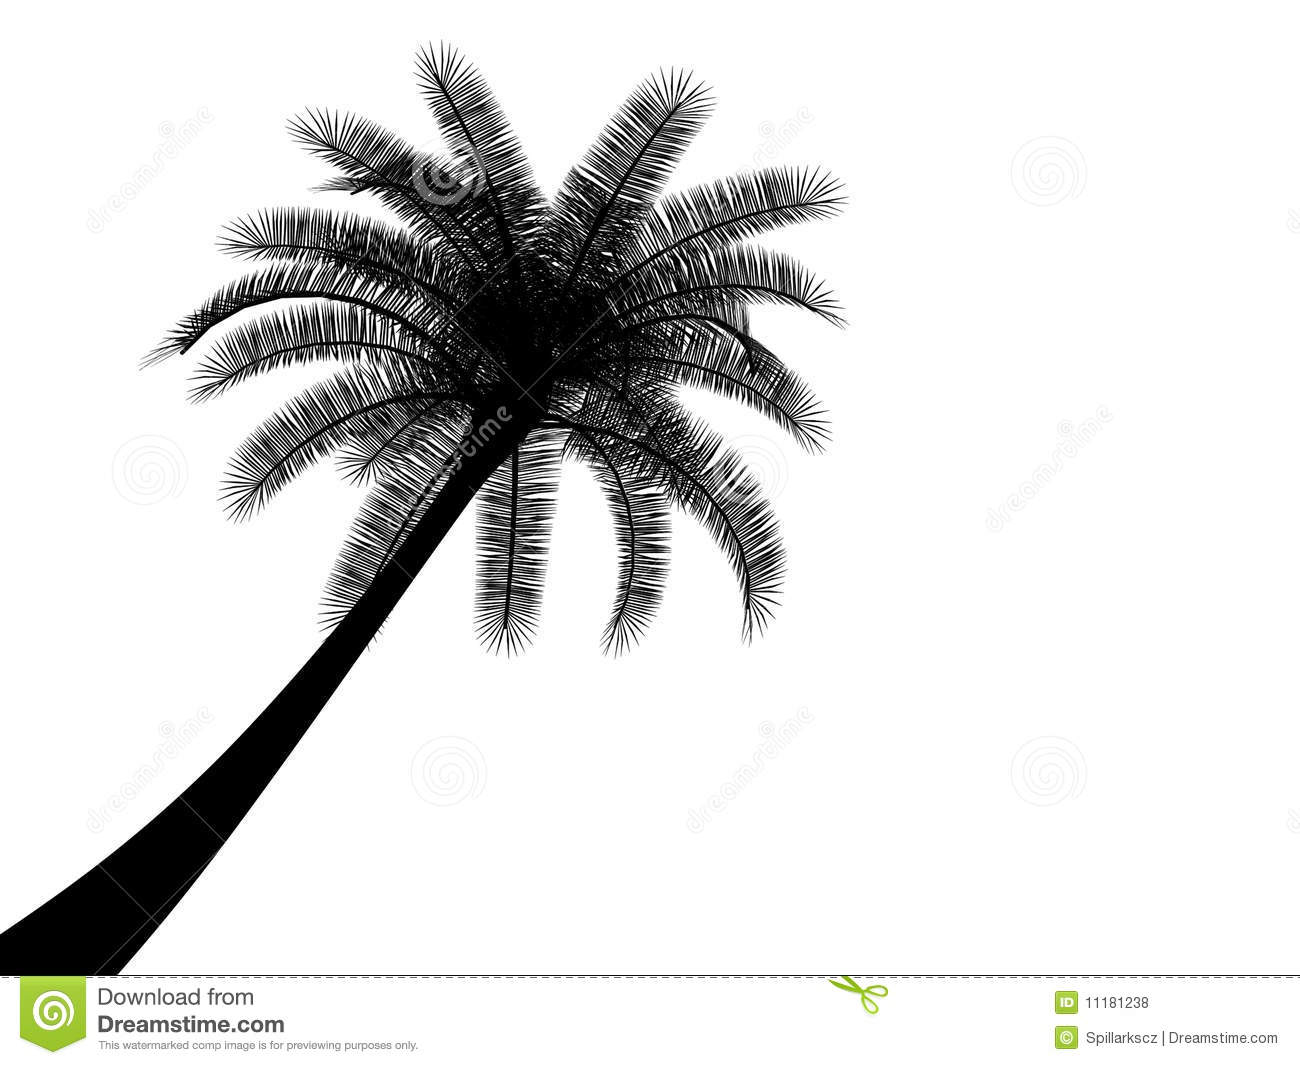 Top 10 Palm Tree Care Mistakes - Florida Palm Trees Black and white palm tree pictures